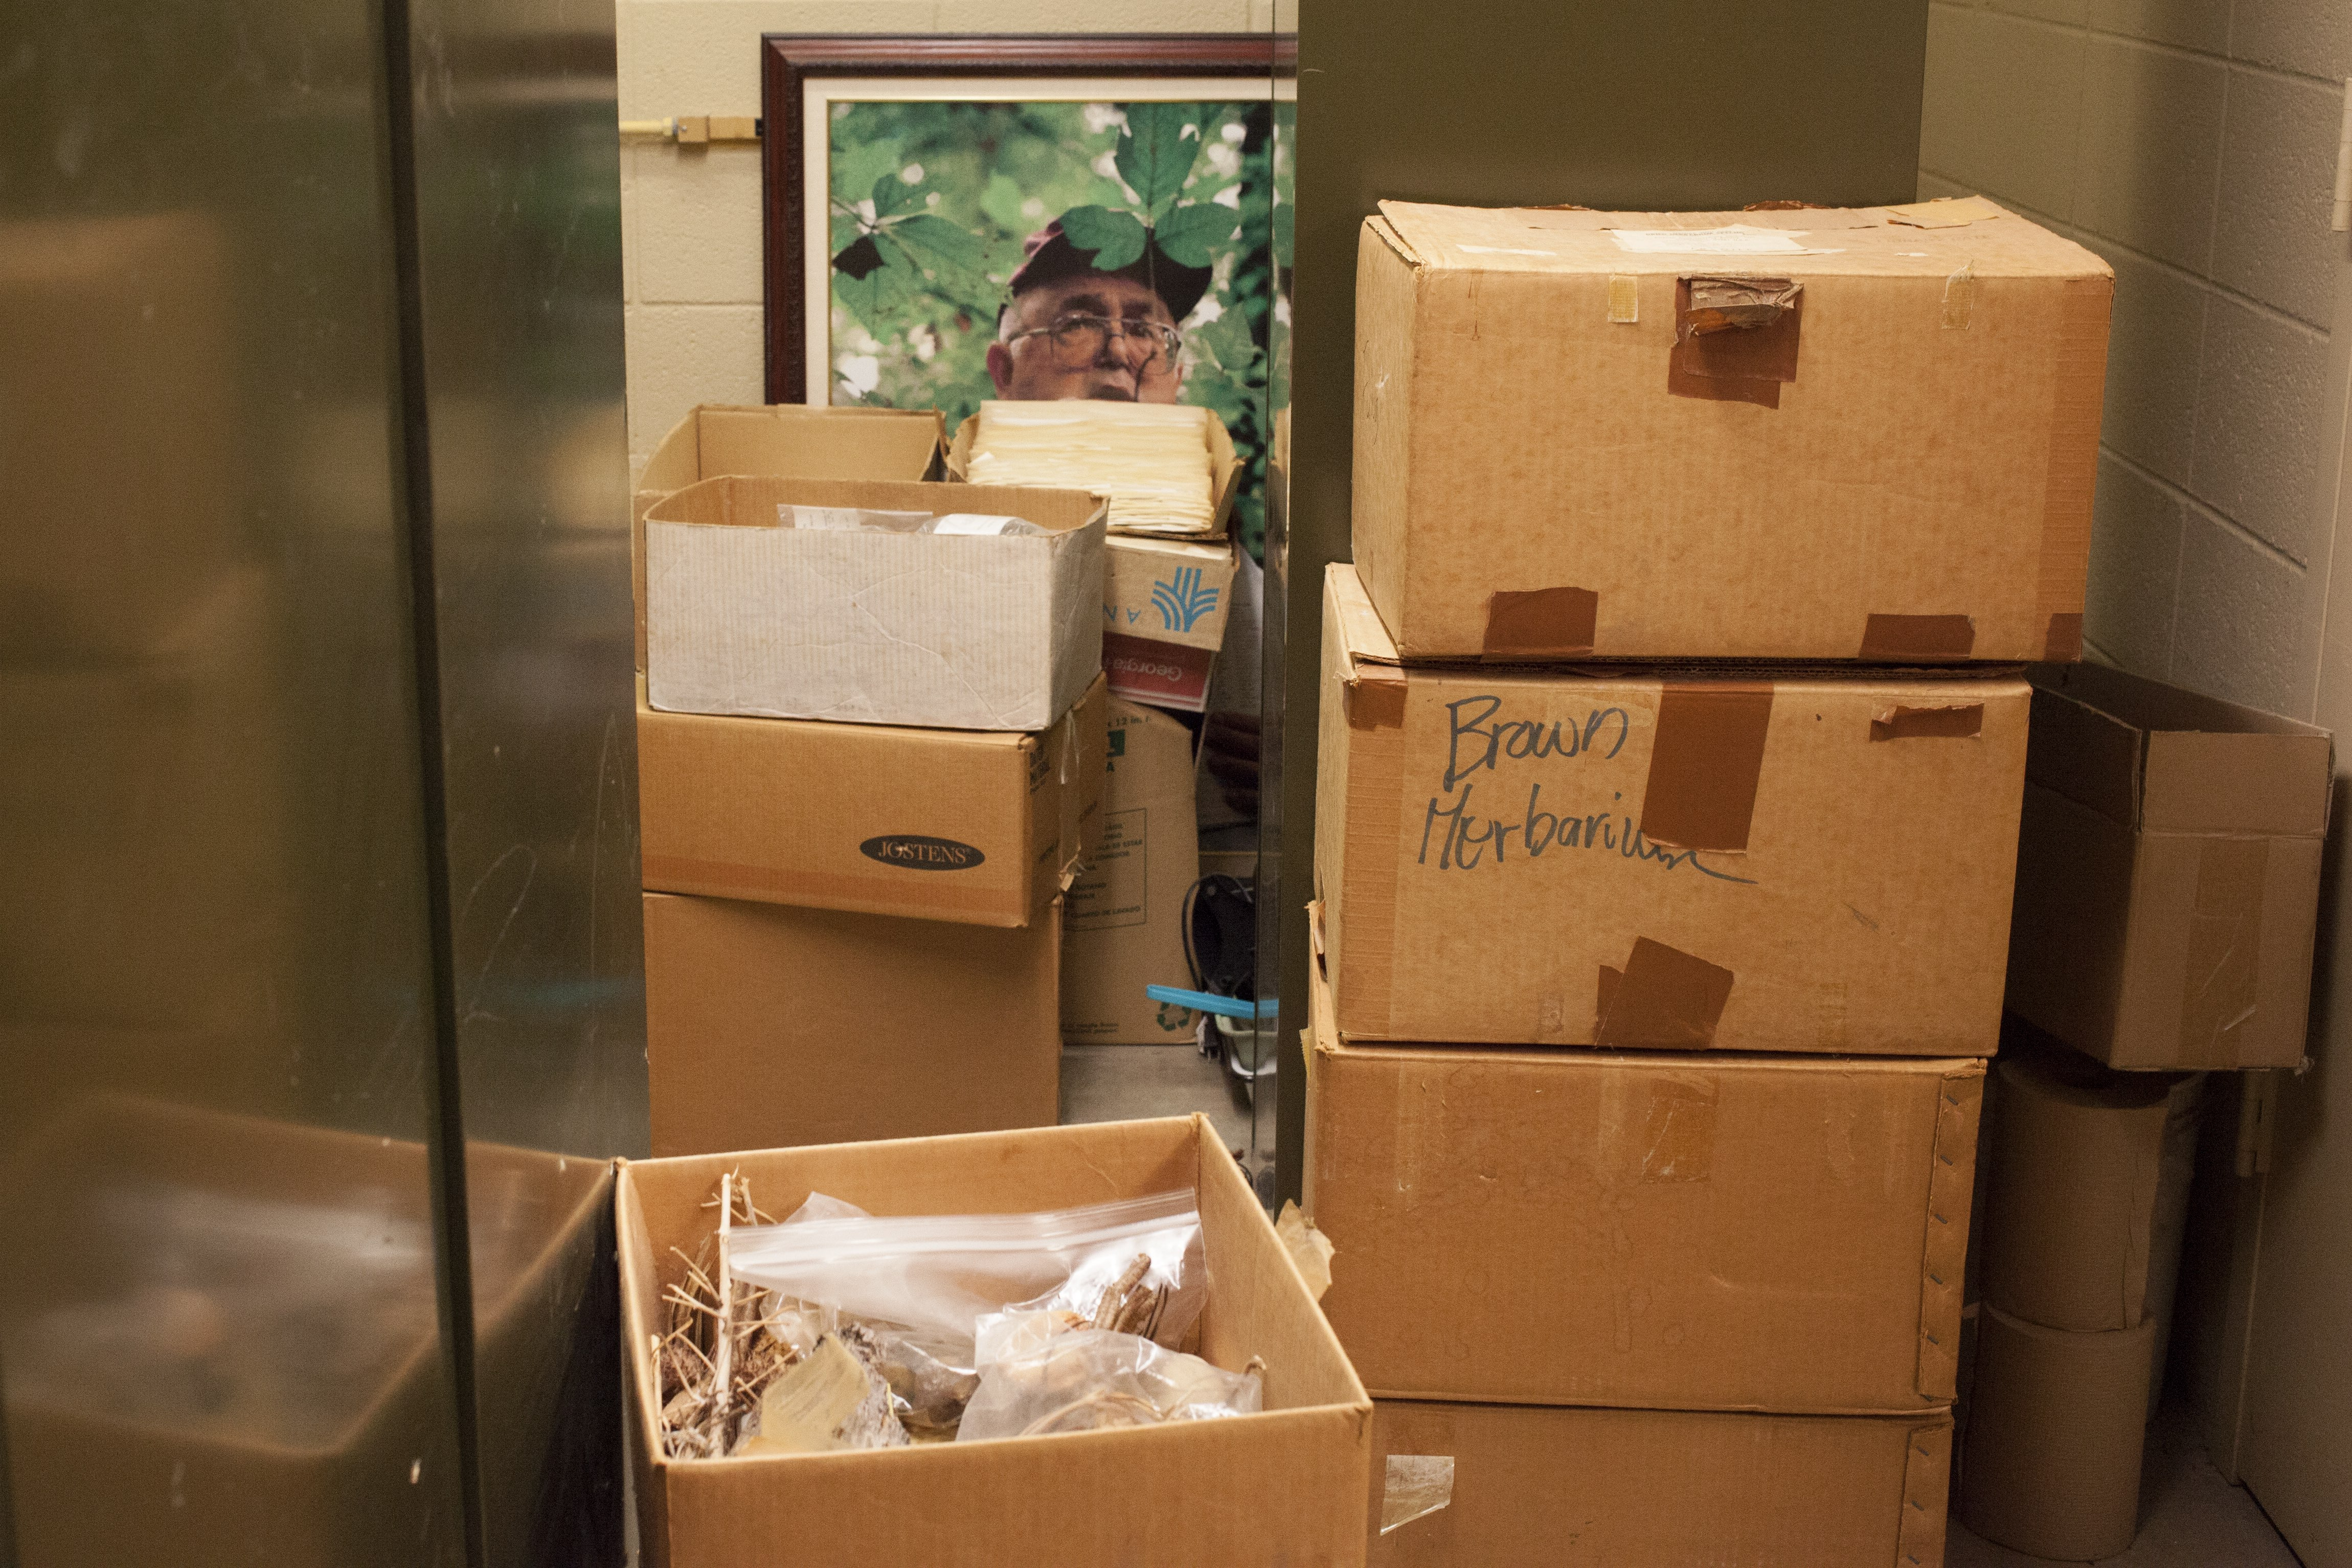 A portrait of Dale Thomas, who collected much of the ULM herbarium, sits behind boxes days before the collection was transferred to the Botanical Research Institute, in Texas. (Irina Zhorov/The Pulse)